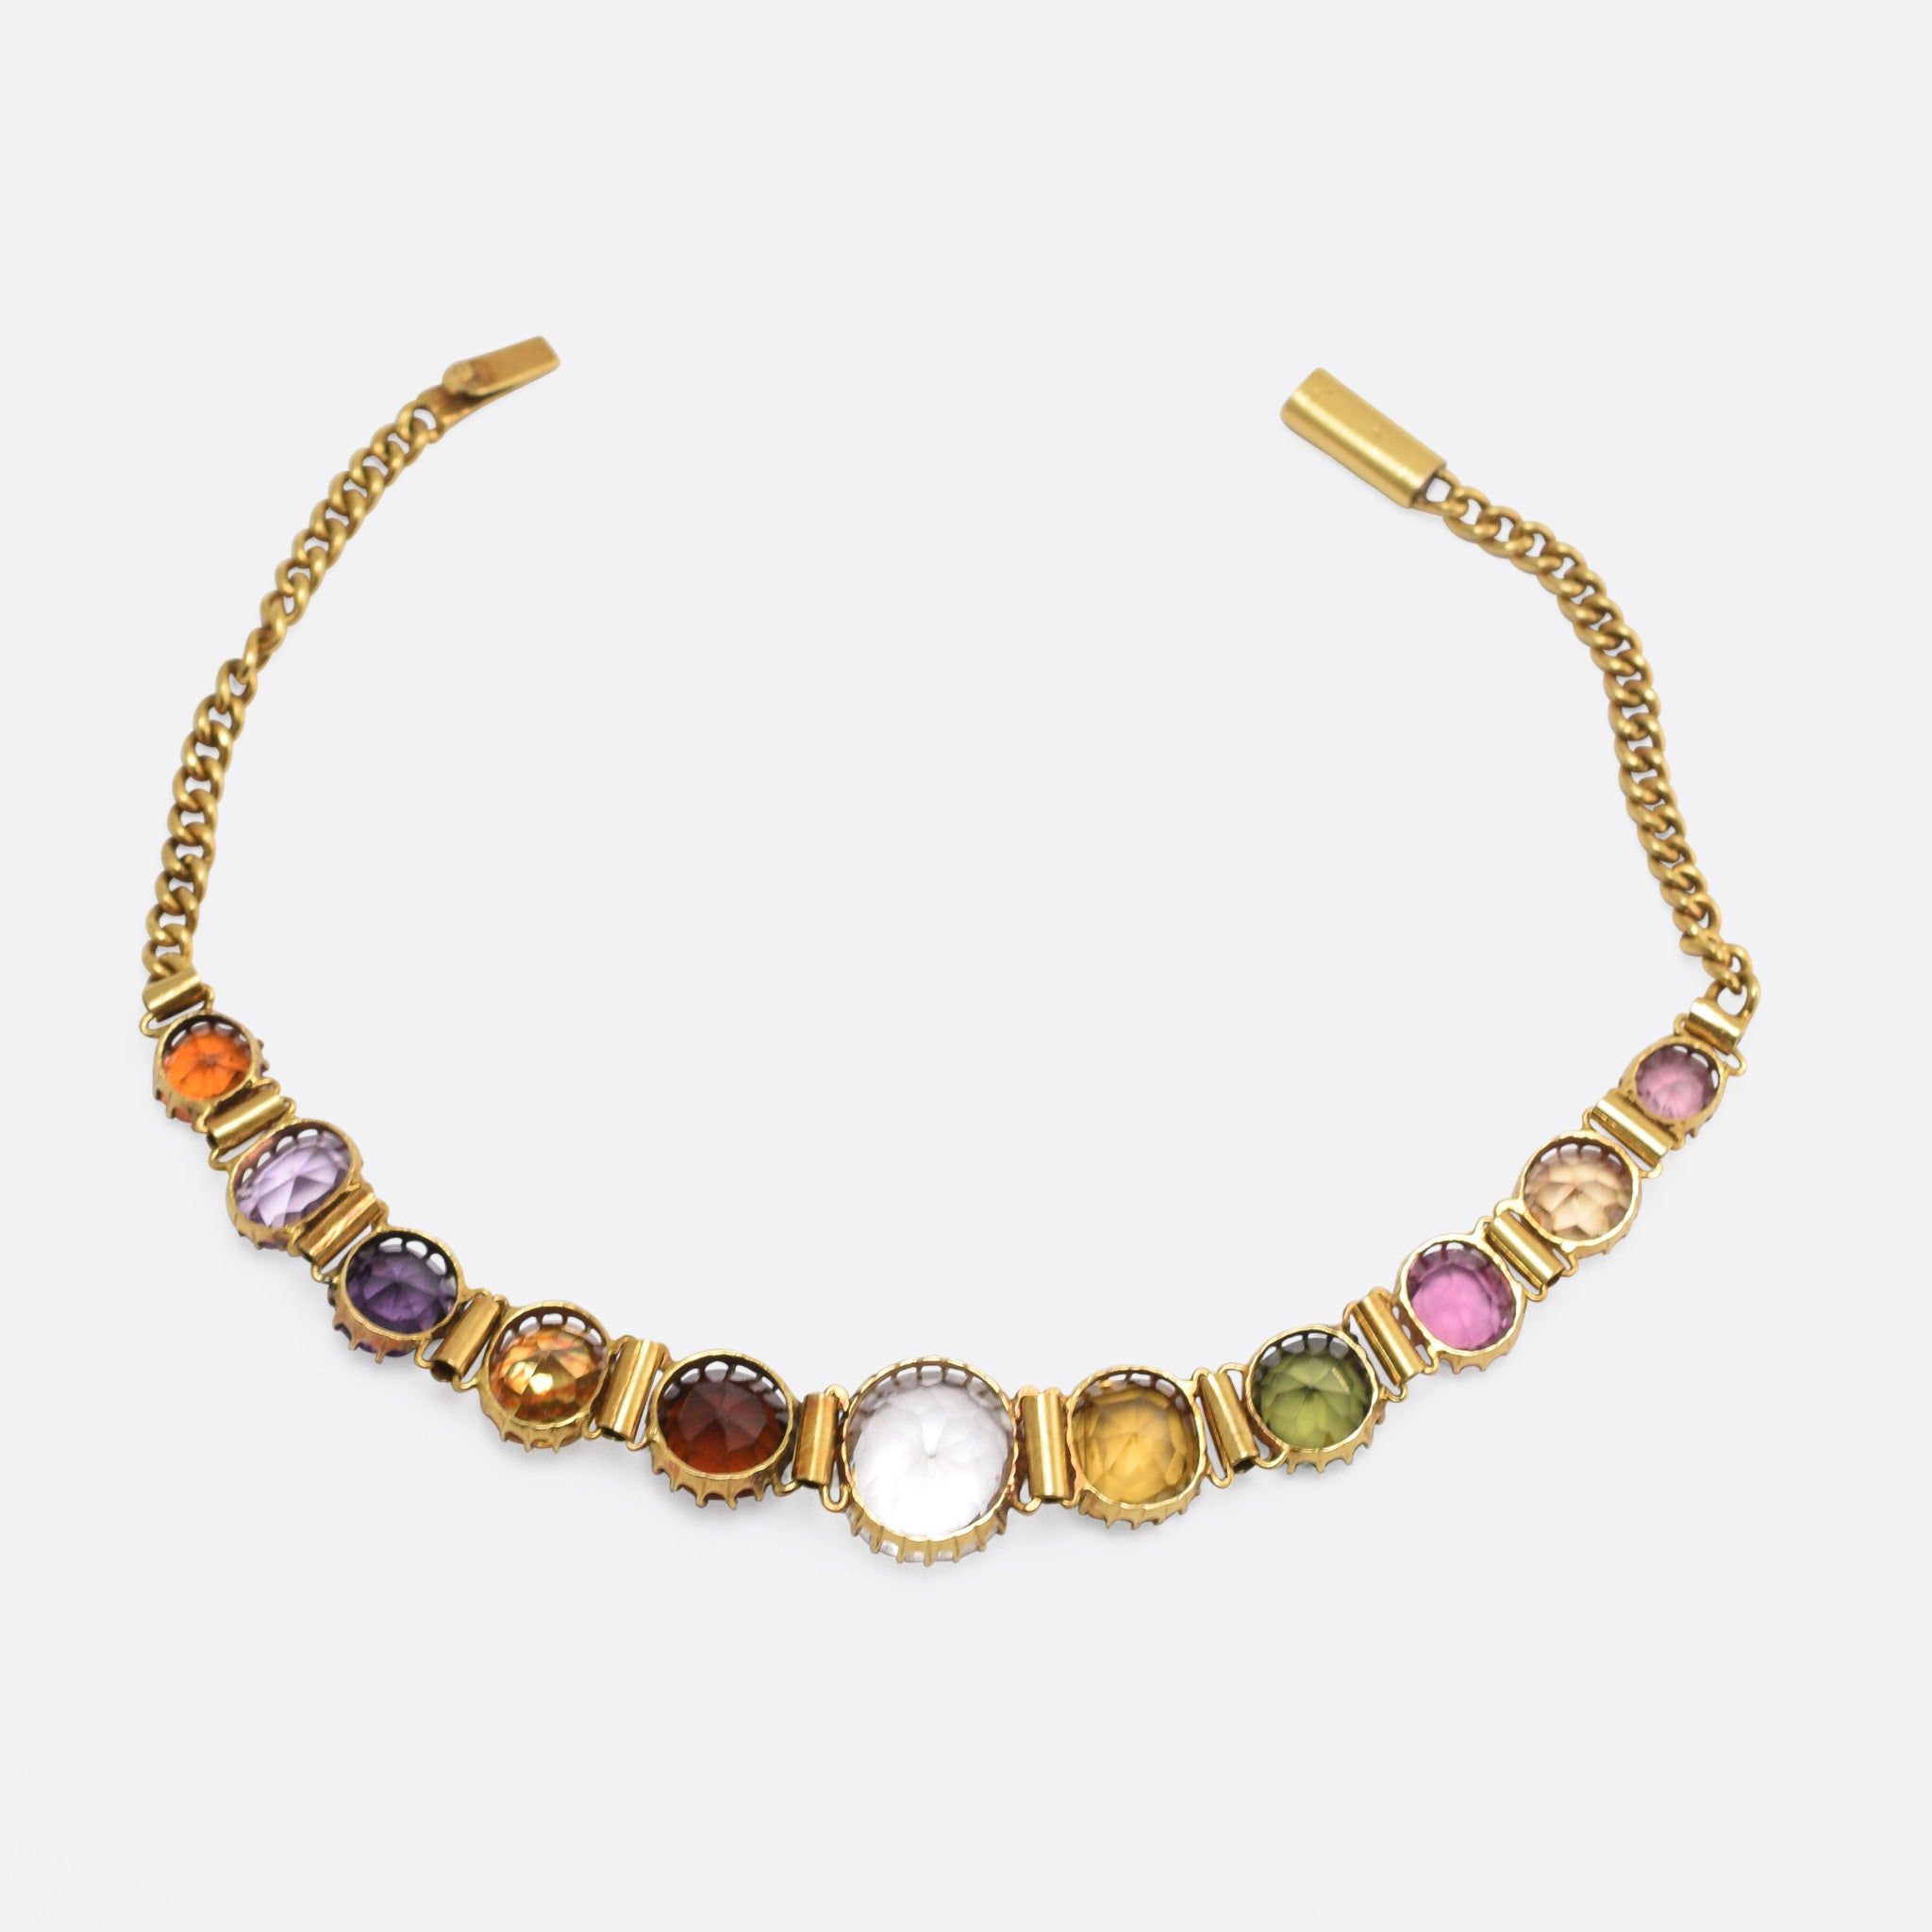 org victorian gem link bracelet gold id gemstone multi necklace antique at j bracelets jewelry